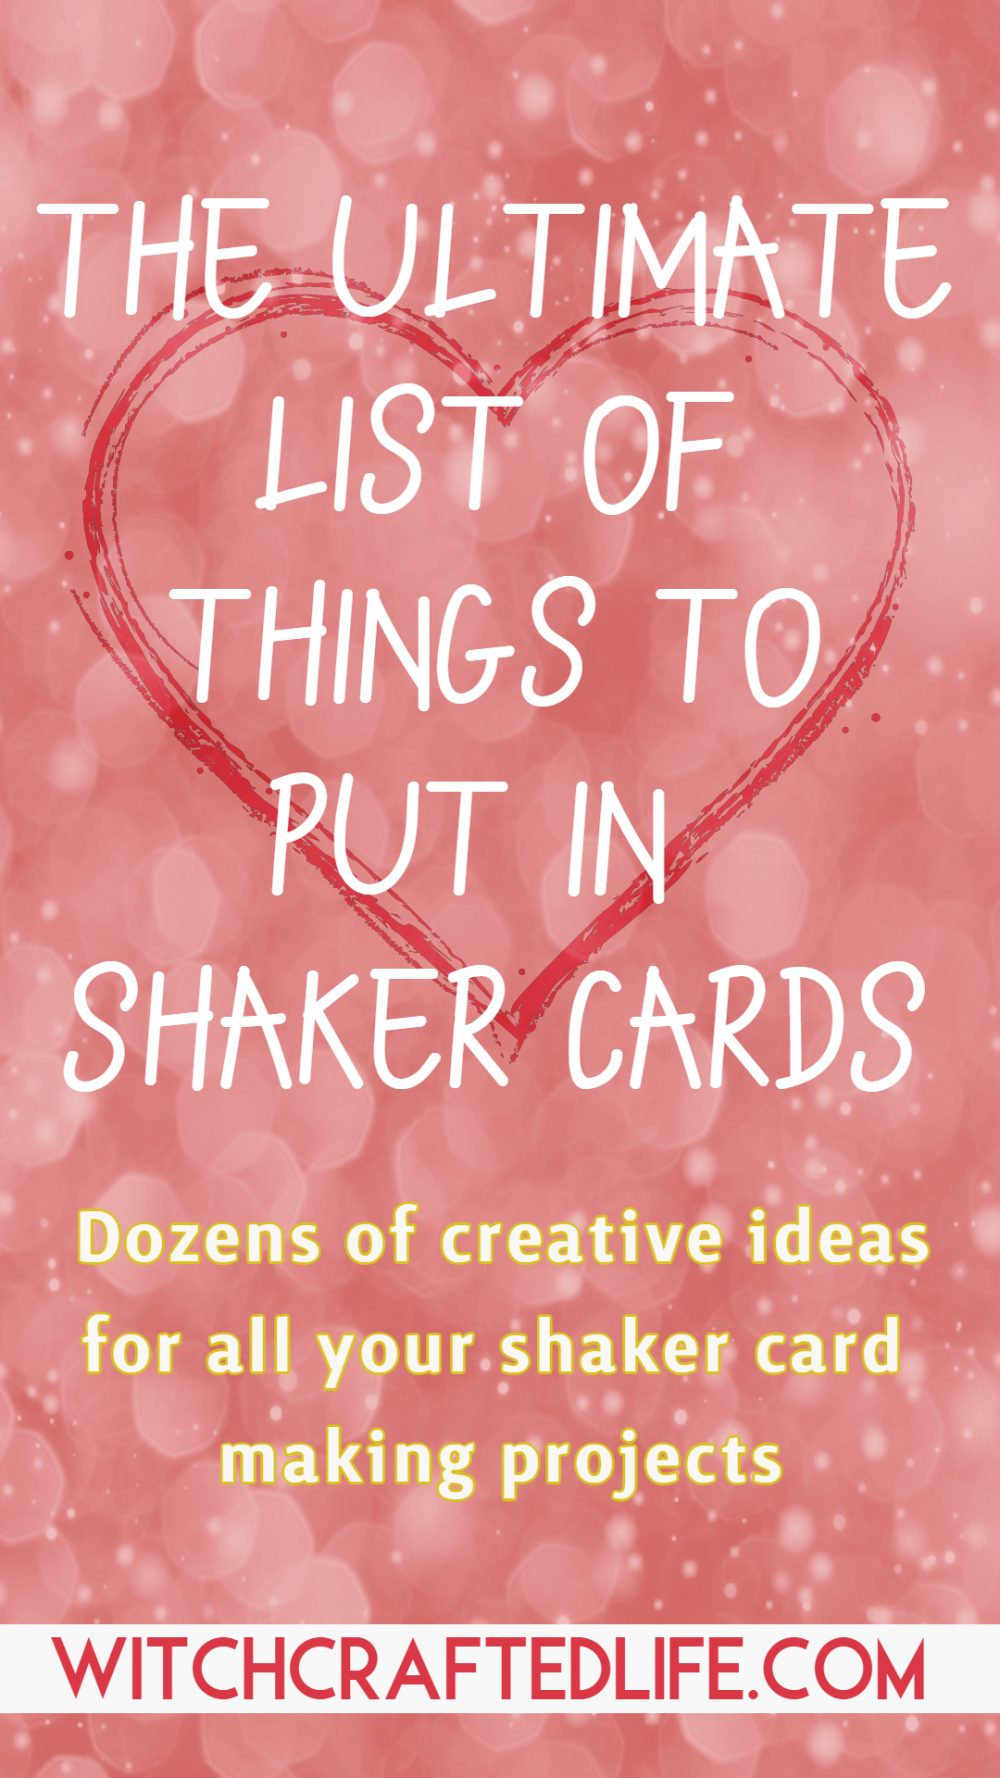 The Ultimate List of Things to Put in Shaker Cards